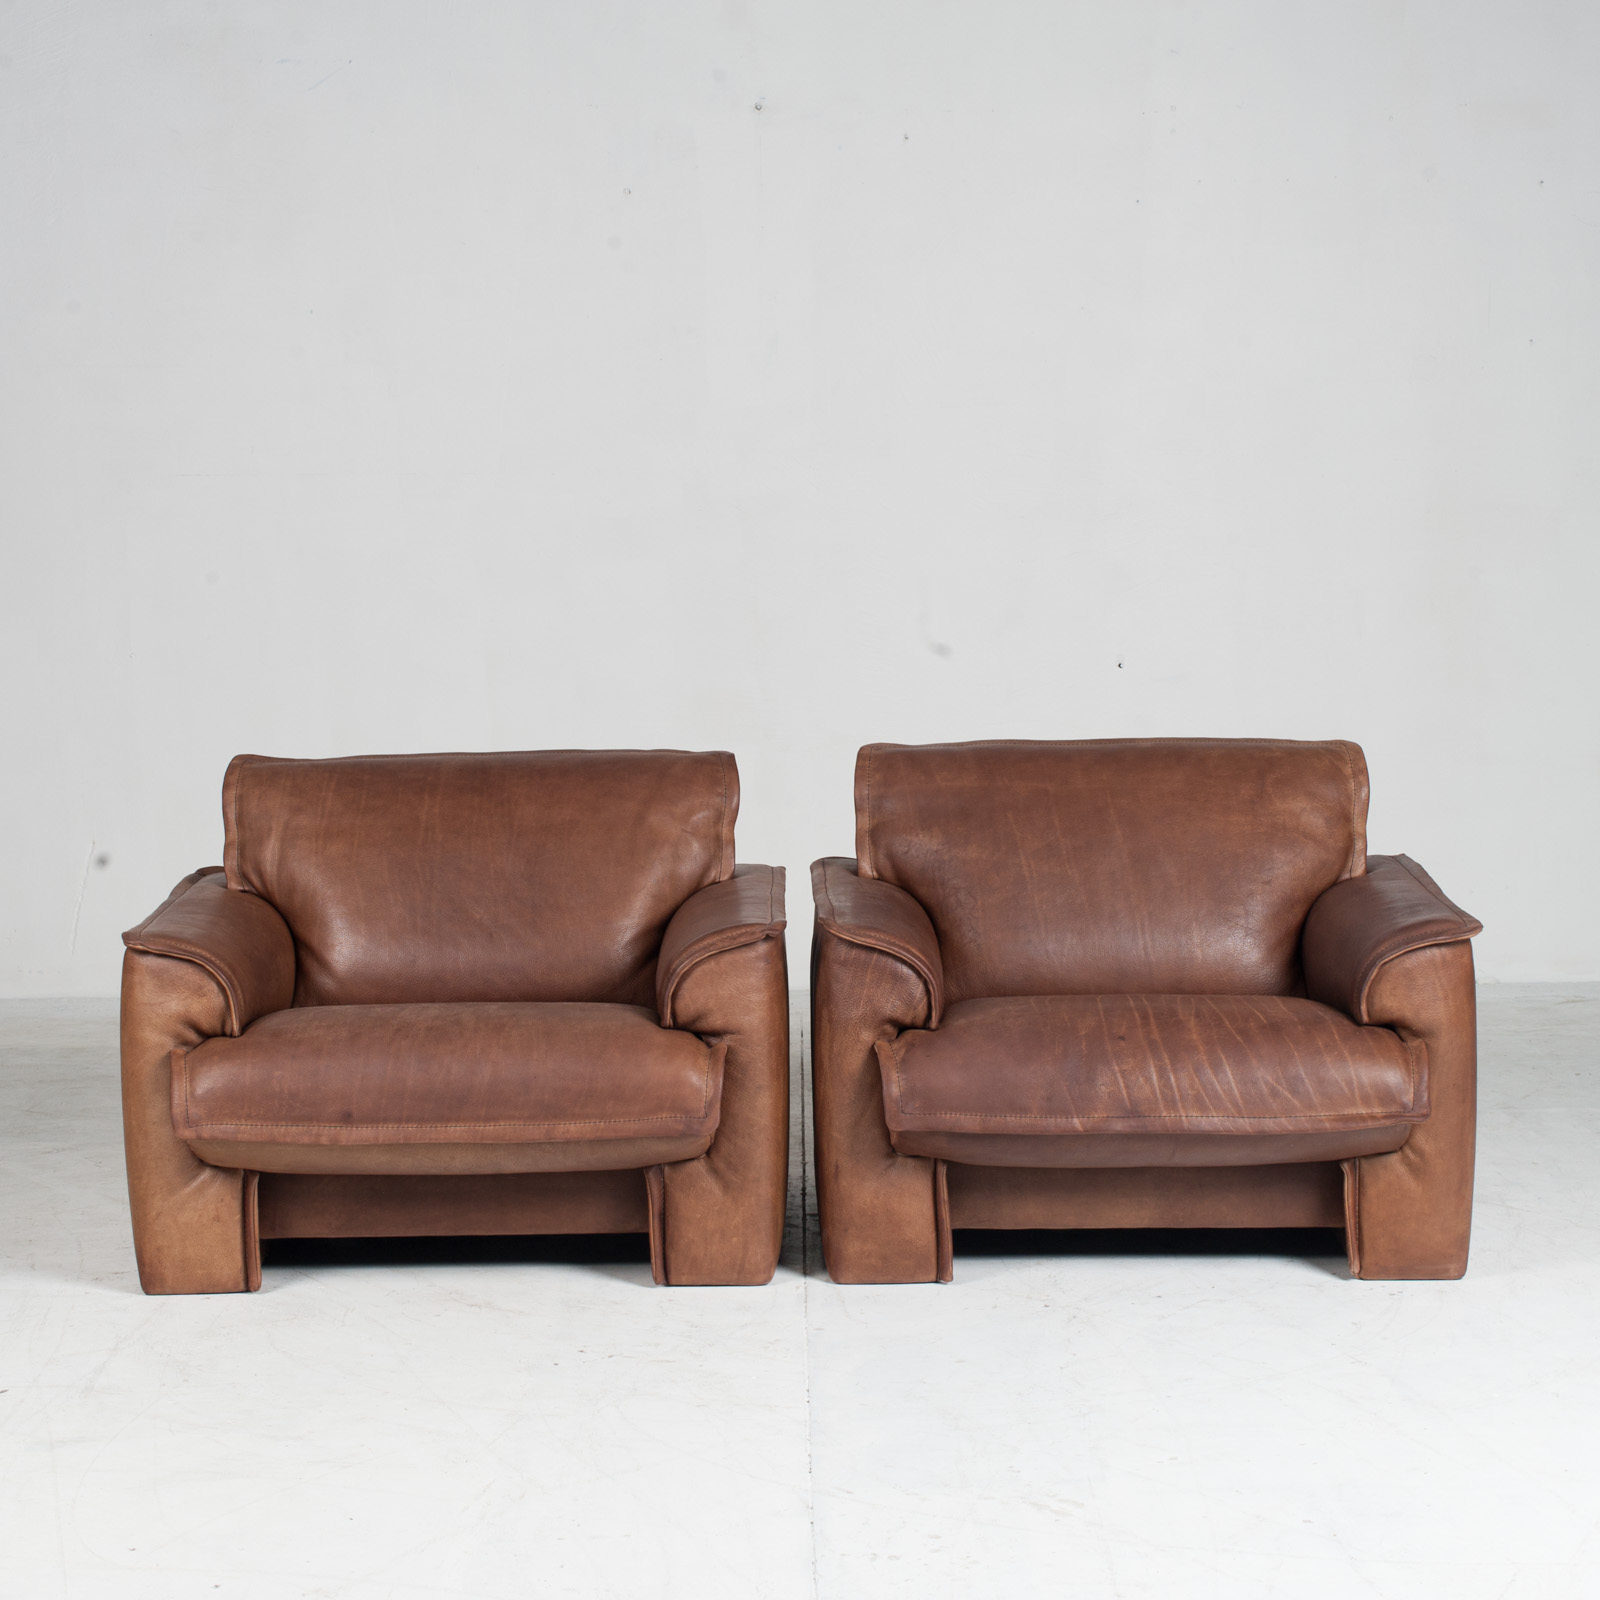 Armchairs By De Sede In Tan Neck Leather 1960s Denmark 012